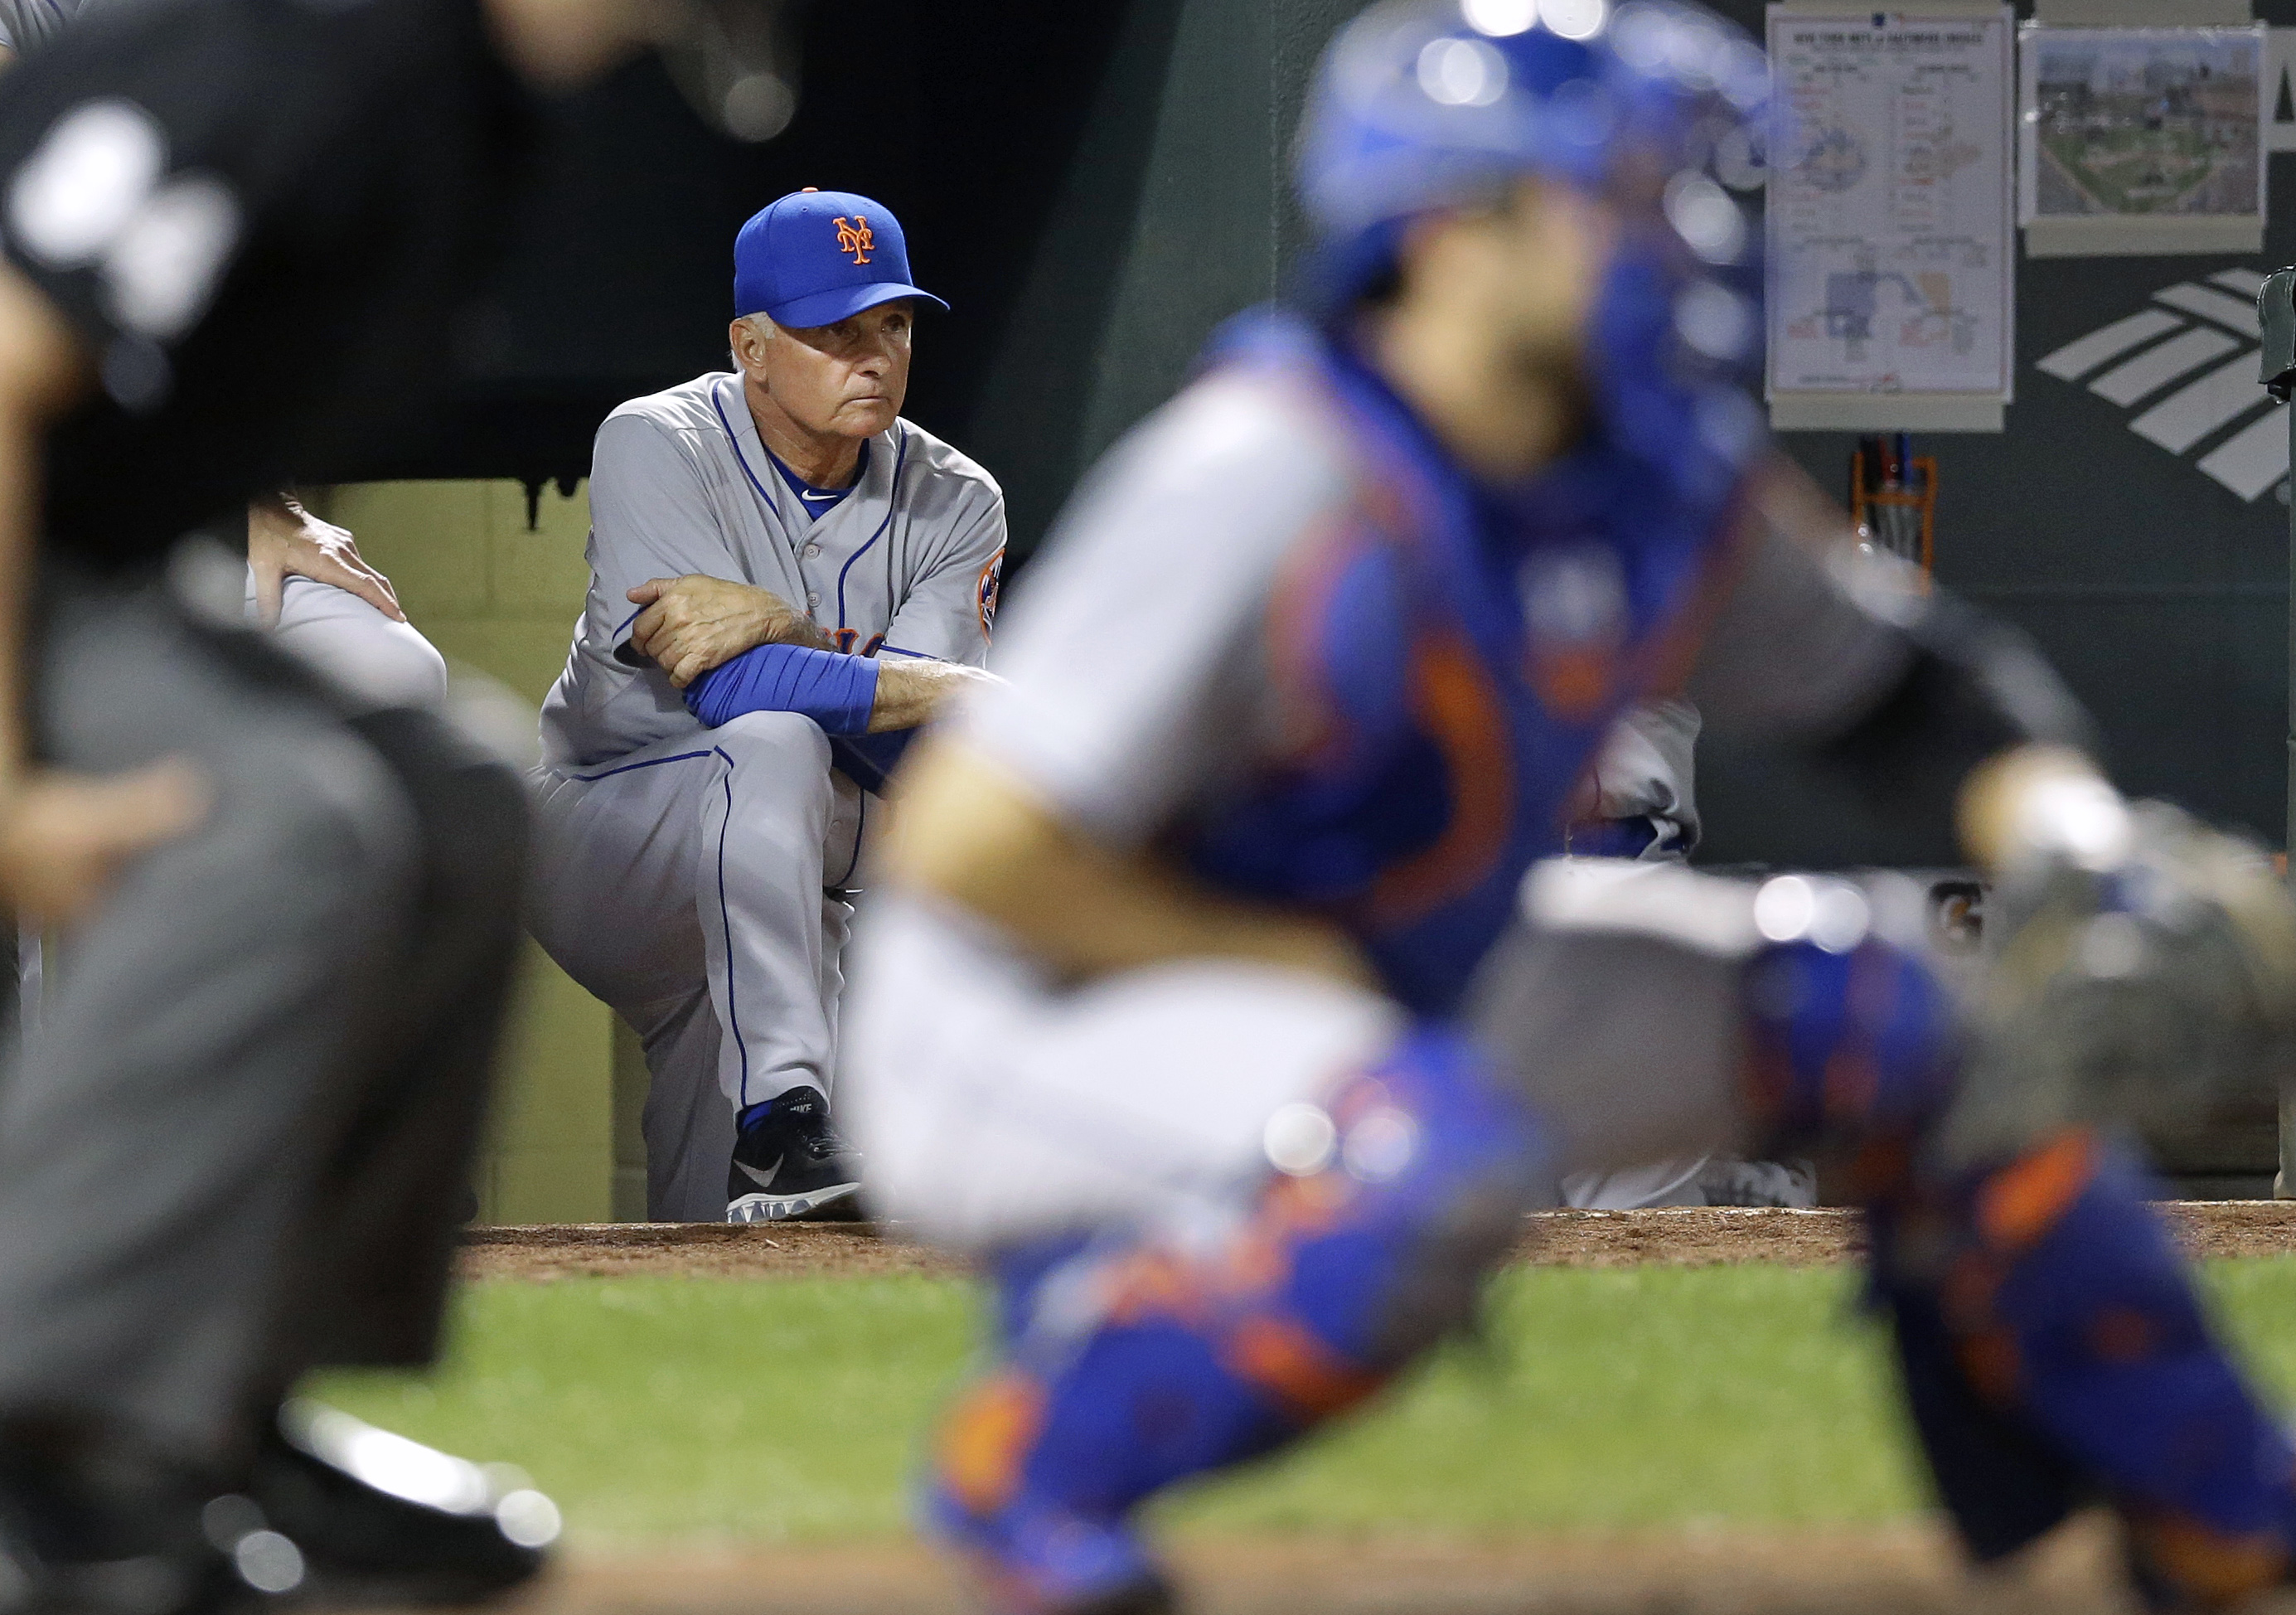 New York Mets manager Terry Collins, back, watches from the dugout in the fourth inning of a baseball game against the Baltimore Orioles, Tuesday, Aug. 18, 2015, in Baltimore. (AP Photo/Patrick Semansky)